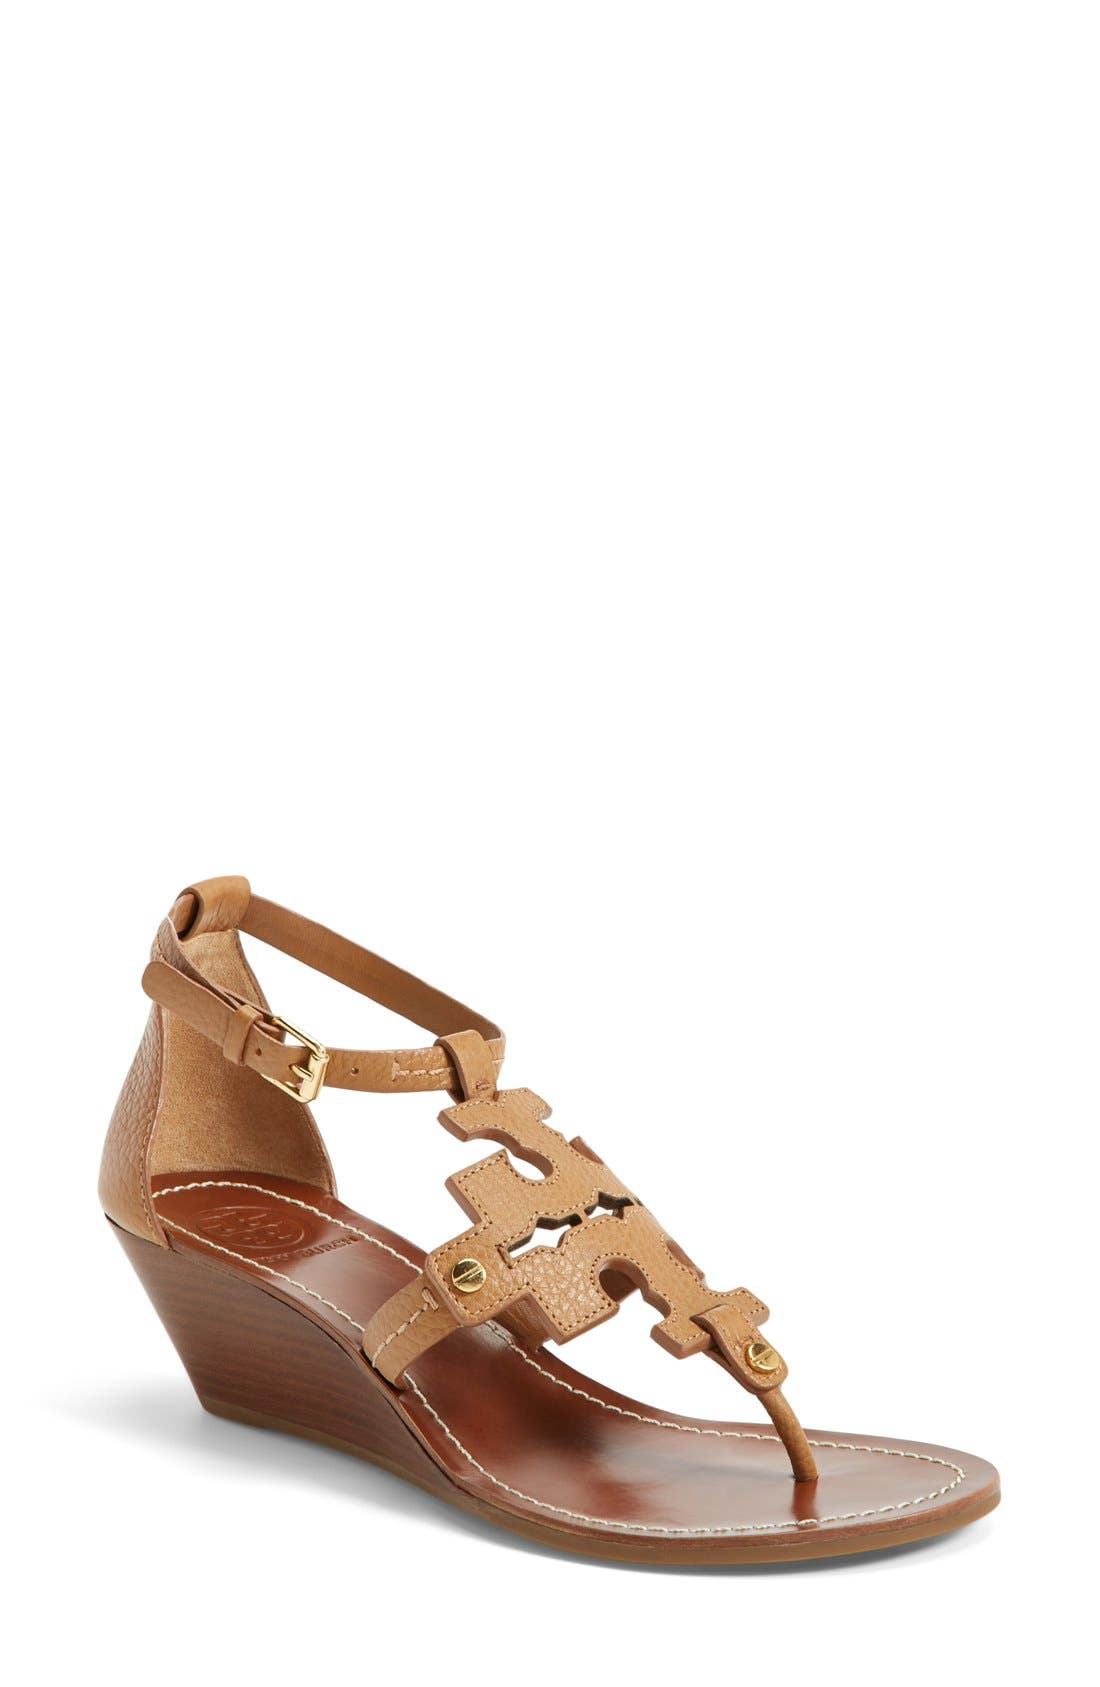 Main Image - Tory Burch 'Chandler' Wedge Leather Sandal (Women)